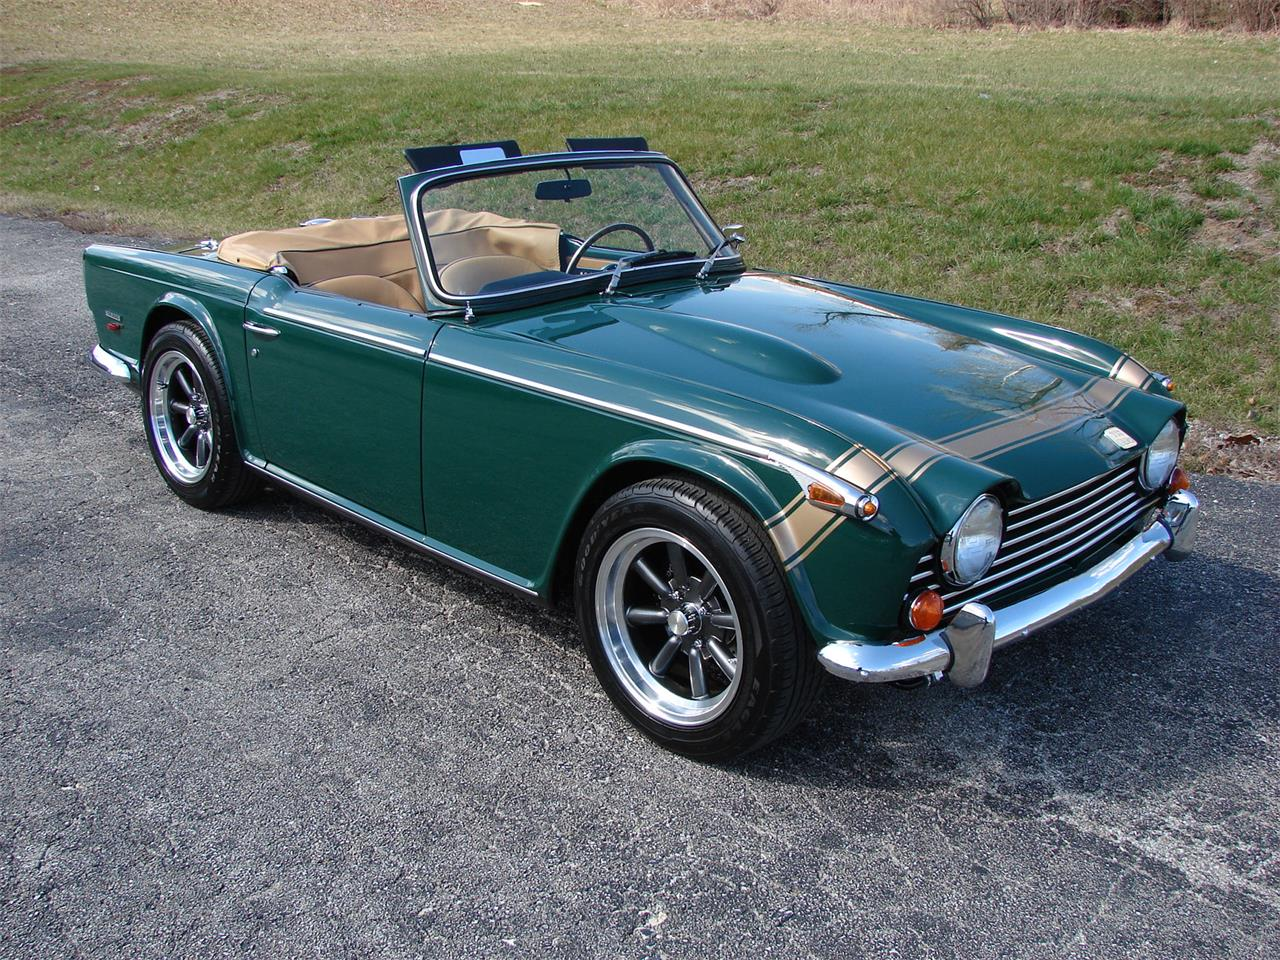 Large Picture of '68 TR250 located in Missouri - $44,995.00 - N4E5